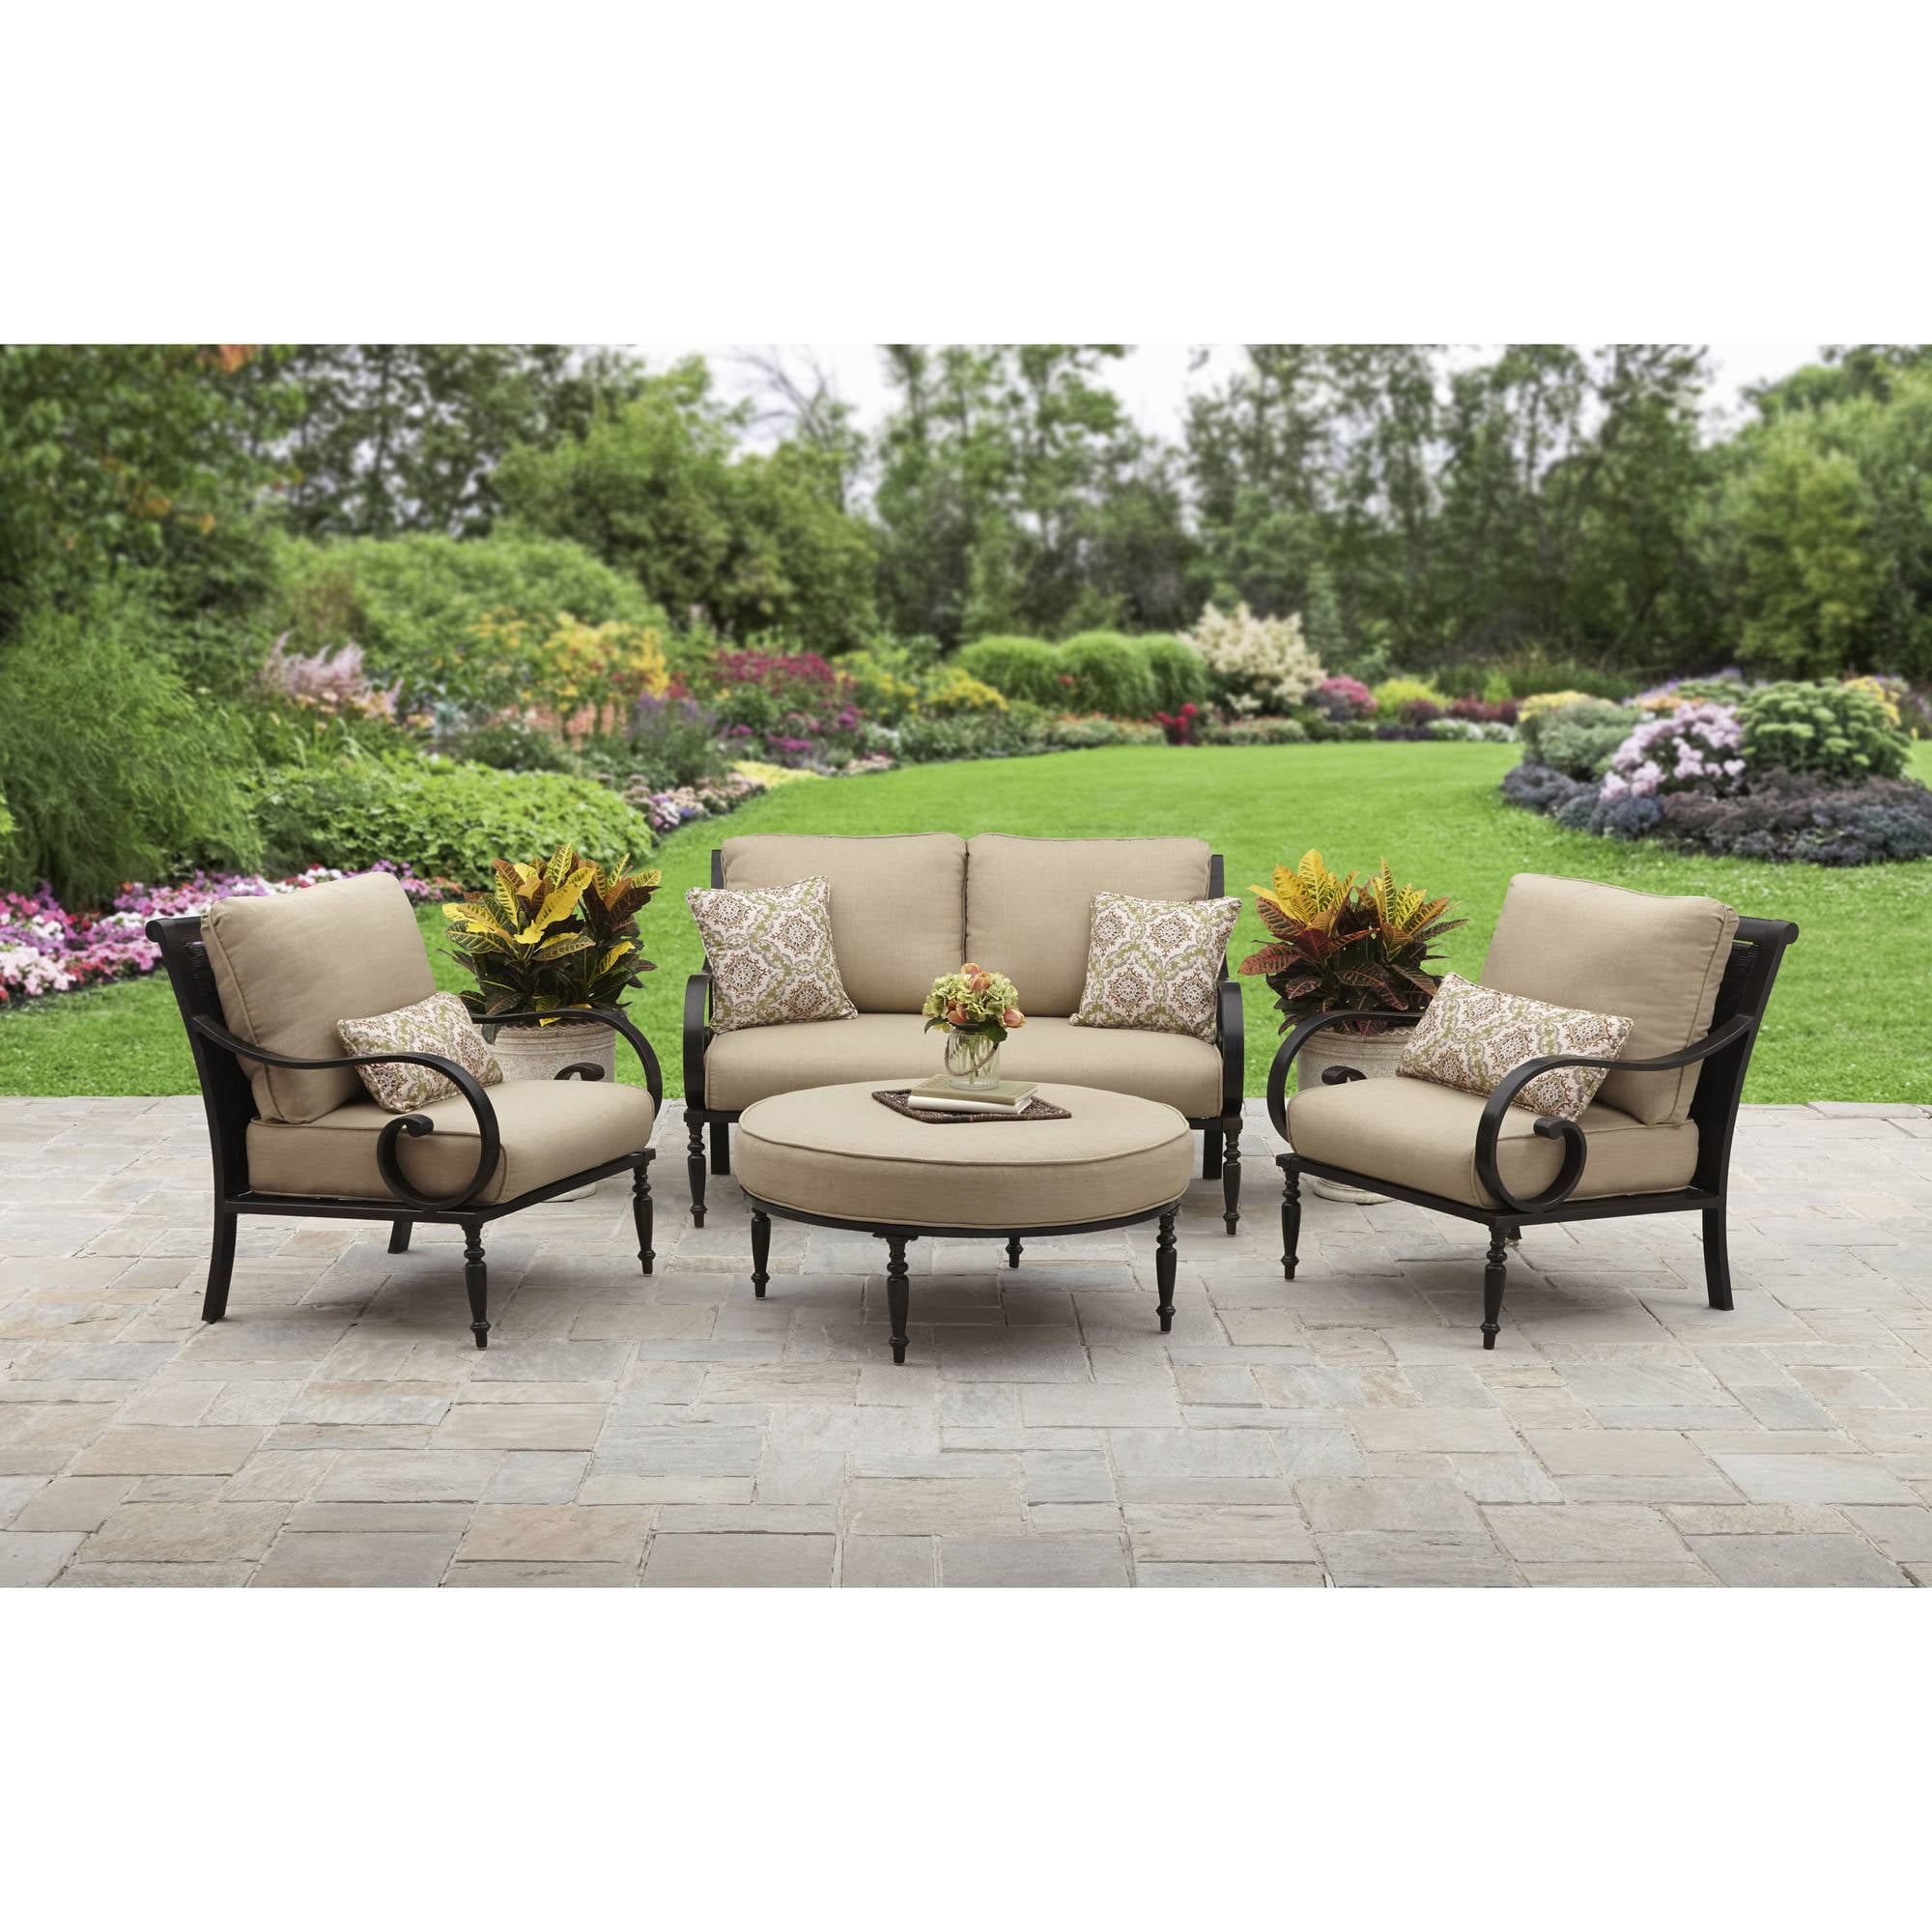 Better Homes and Gardens Englewood Heights II Aluminum 4-Piece Patio Conversation Set, Seats 4 by Generic